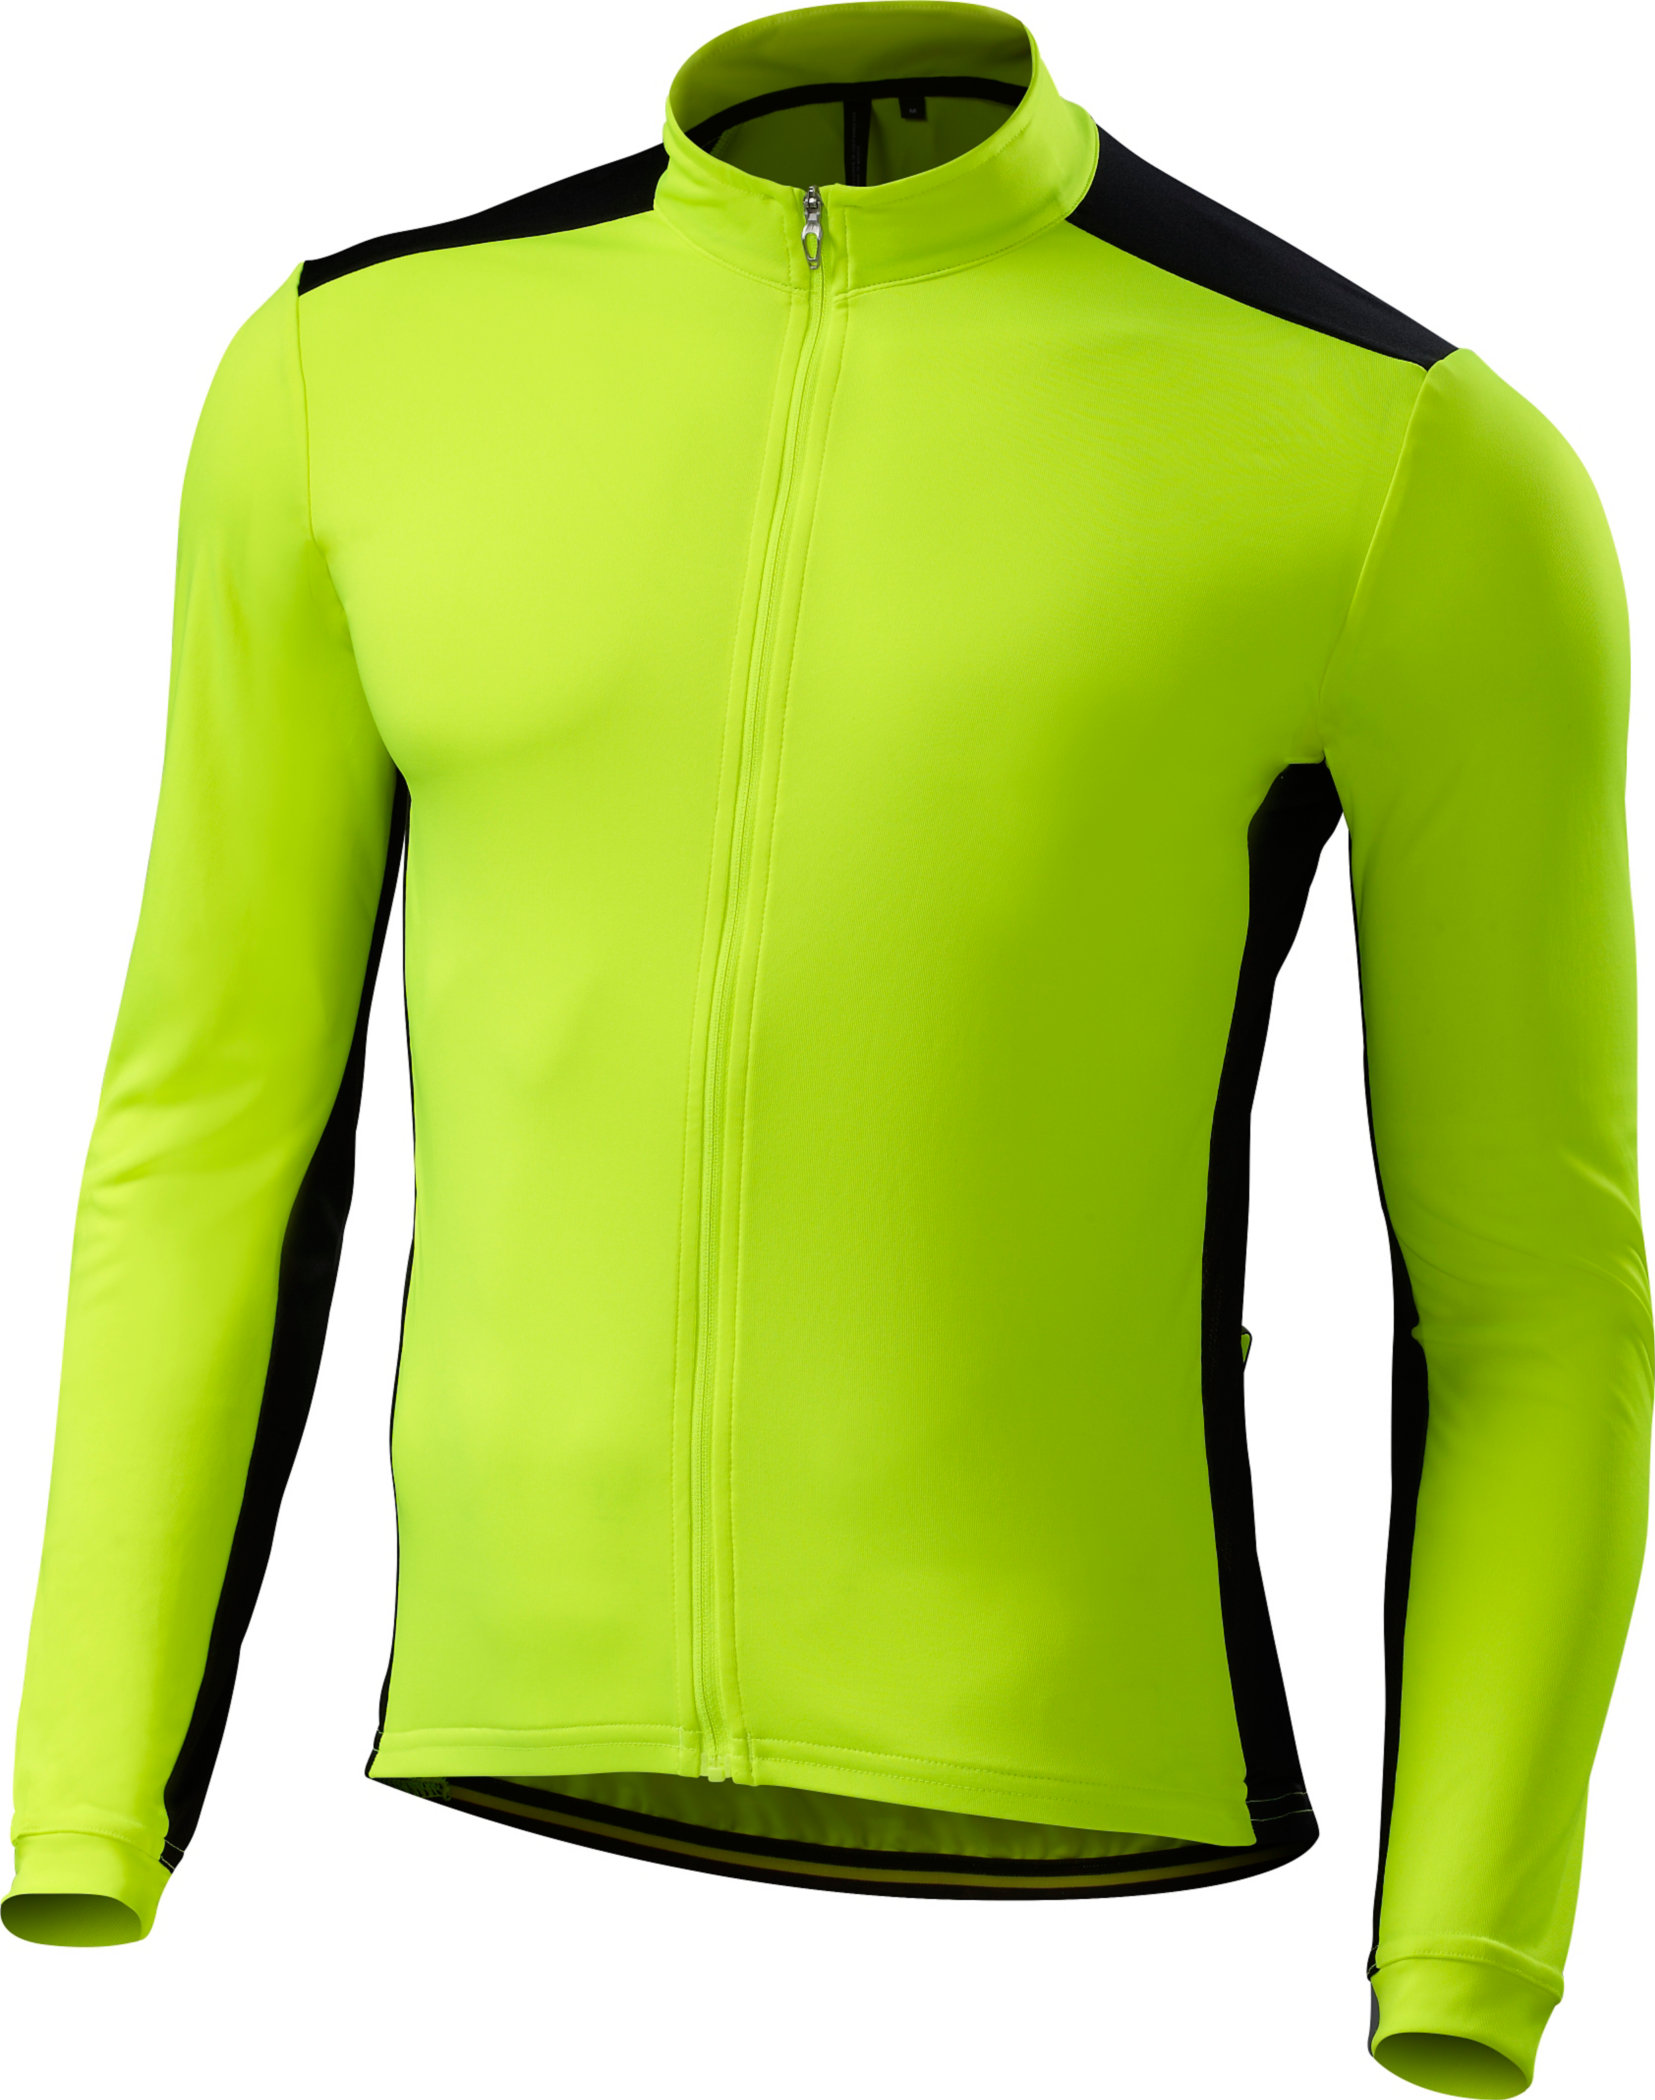 Specialized RBX Sport Long Sleeve Jersey Neon Yellow/Black Large - Alpha Bikes